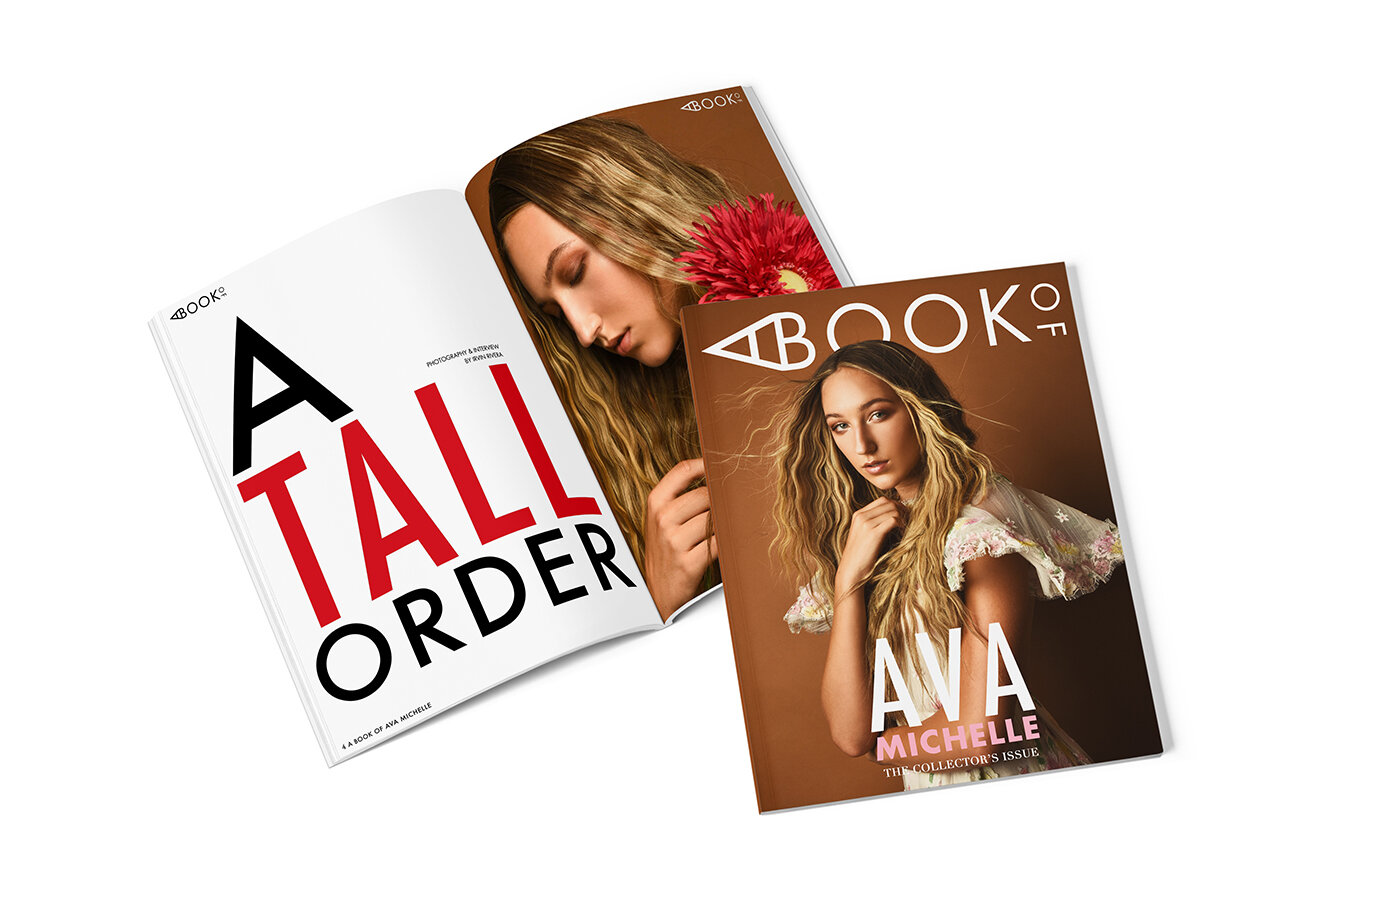 A BOOK OF AVA MICHELLE [THE COLLECTOR'S ISSUE]